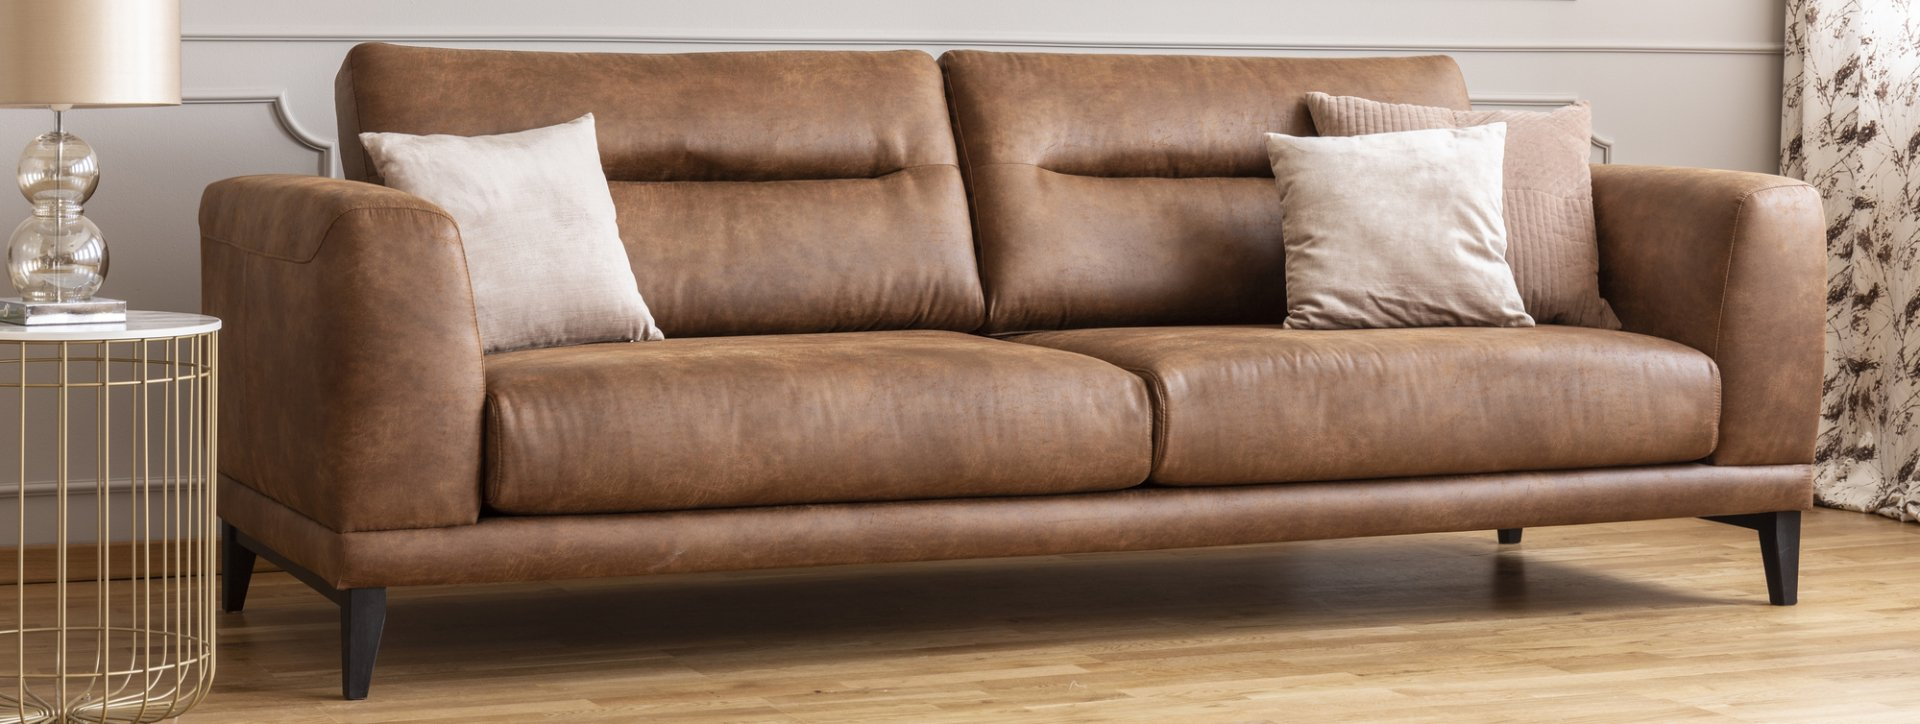 Upholstery Repair in Raleigh, NC - Advanced Leather Care